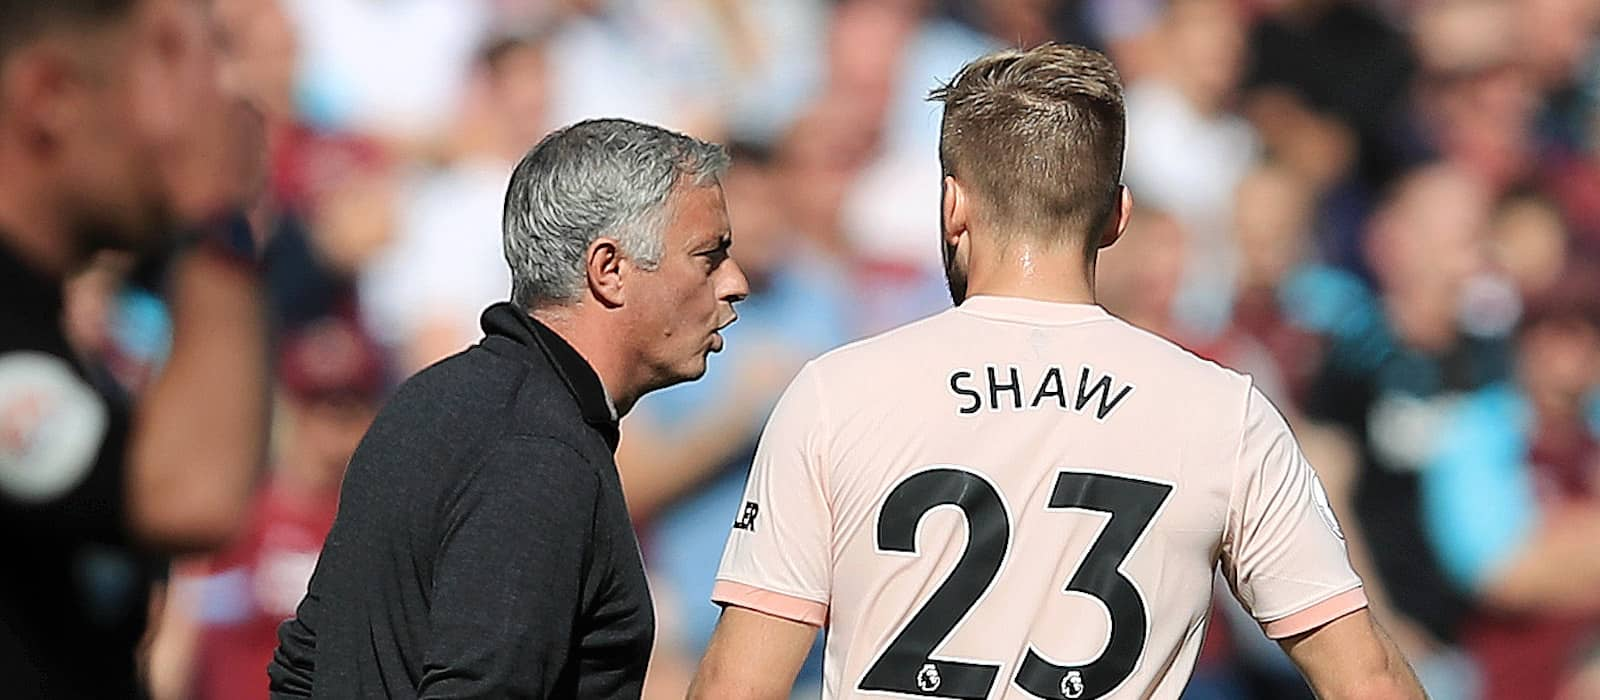 Jose Mourinho blames referee and linesman for Man United's 3-1 loss to West Ham